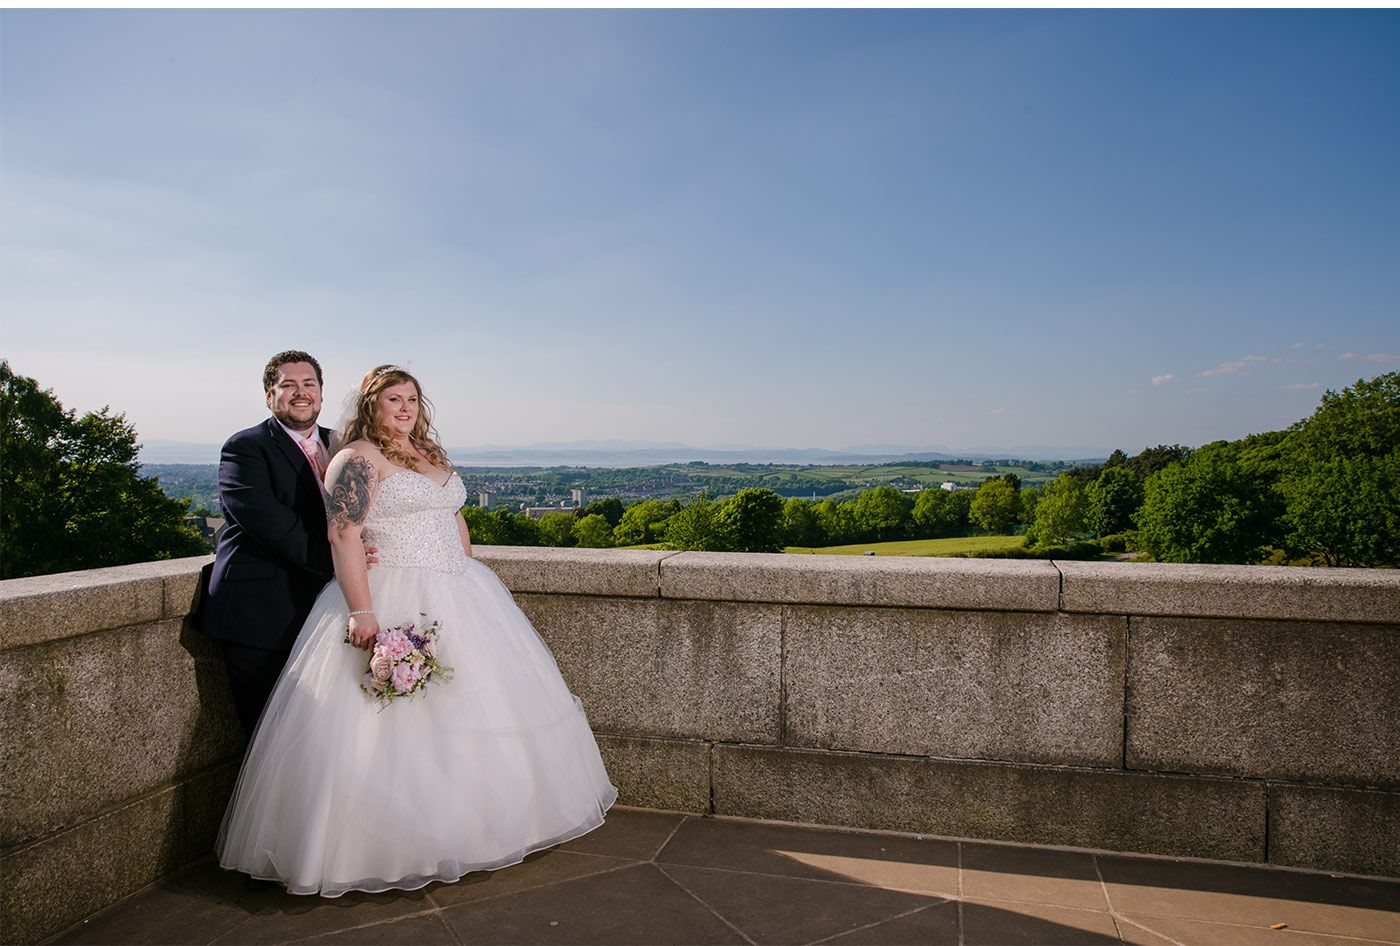 Dan & Lilly Wedding Lancaster Memorial Wedding Photography Ashley Barnard